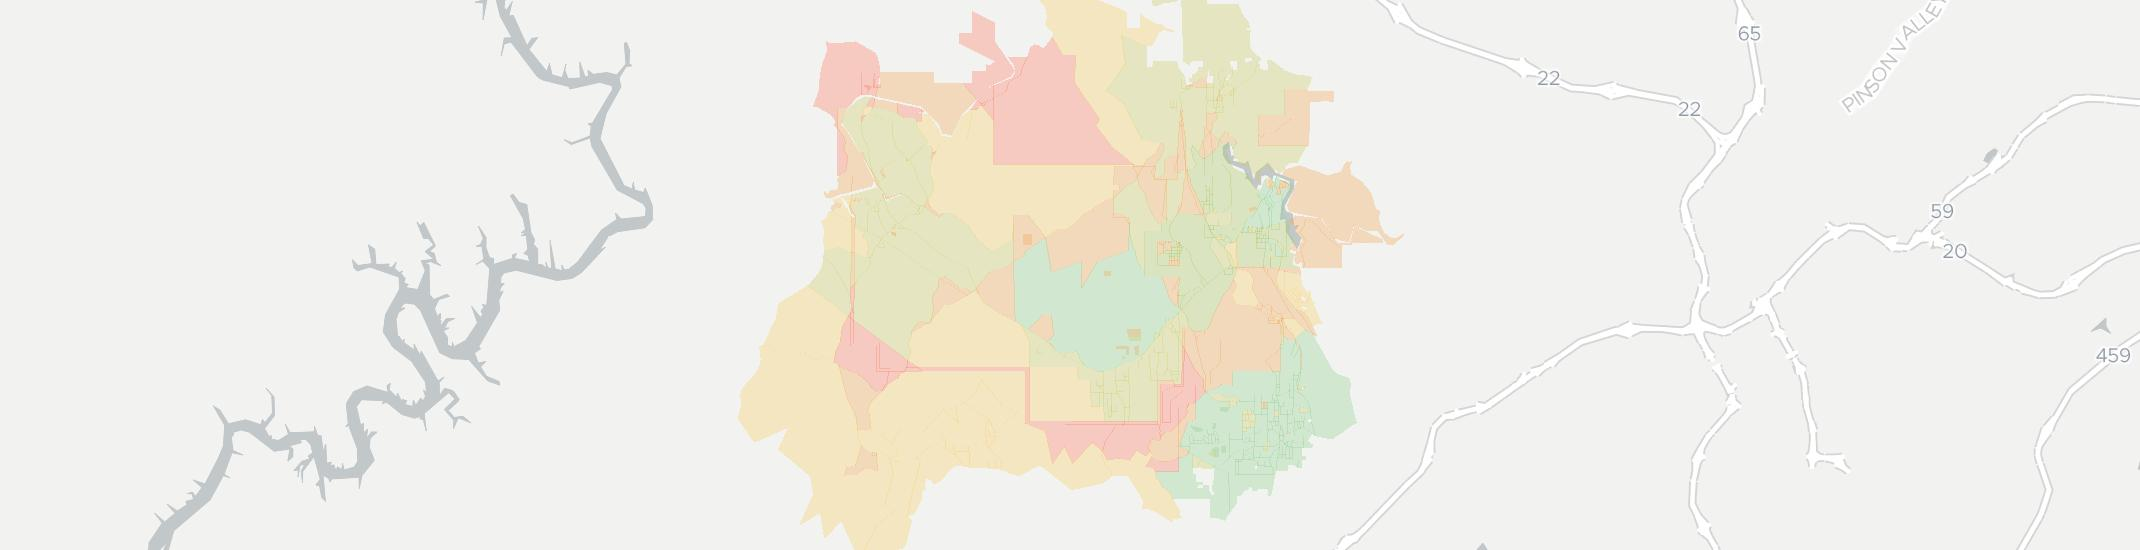 Mulga Internet Competition Map. Click for interactive map.